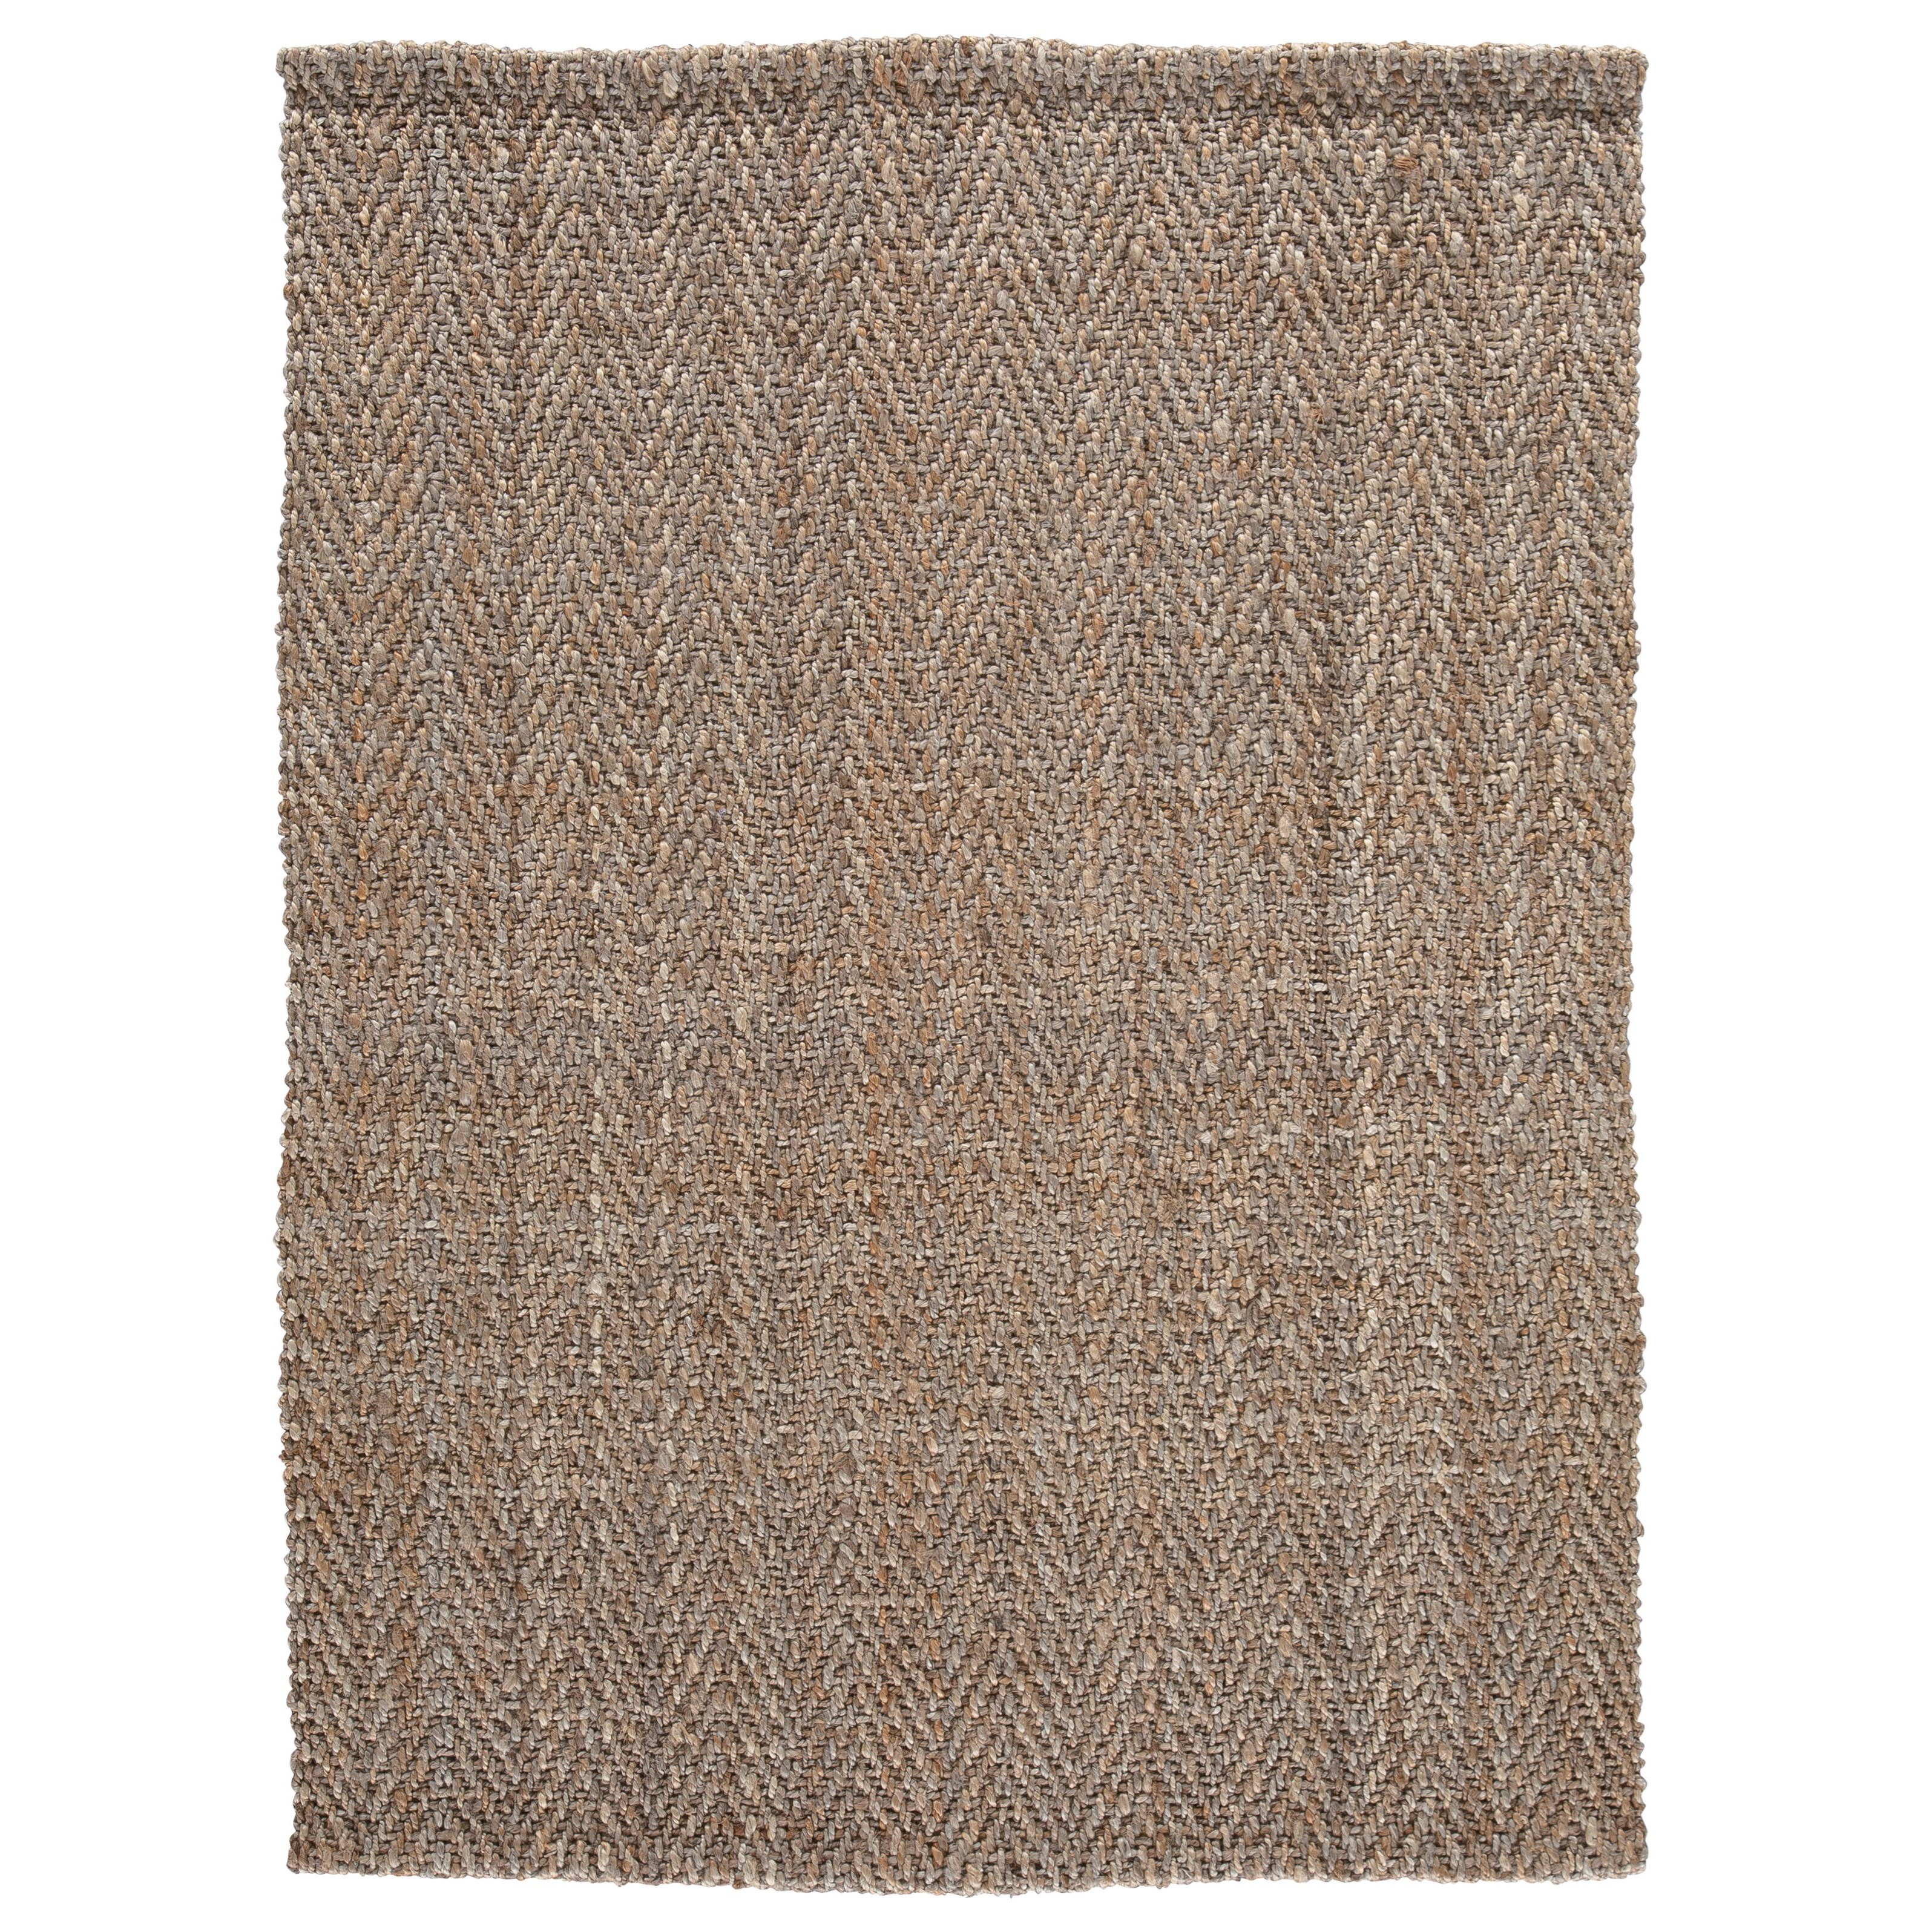 Casual Area Rugs Joao Natural Medium Rug by Signature at Walker's Furniture